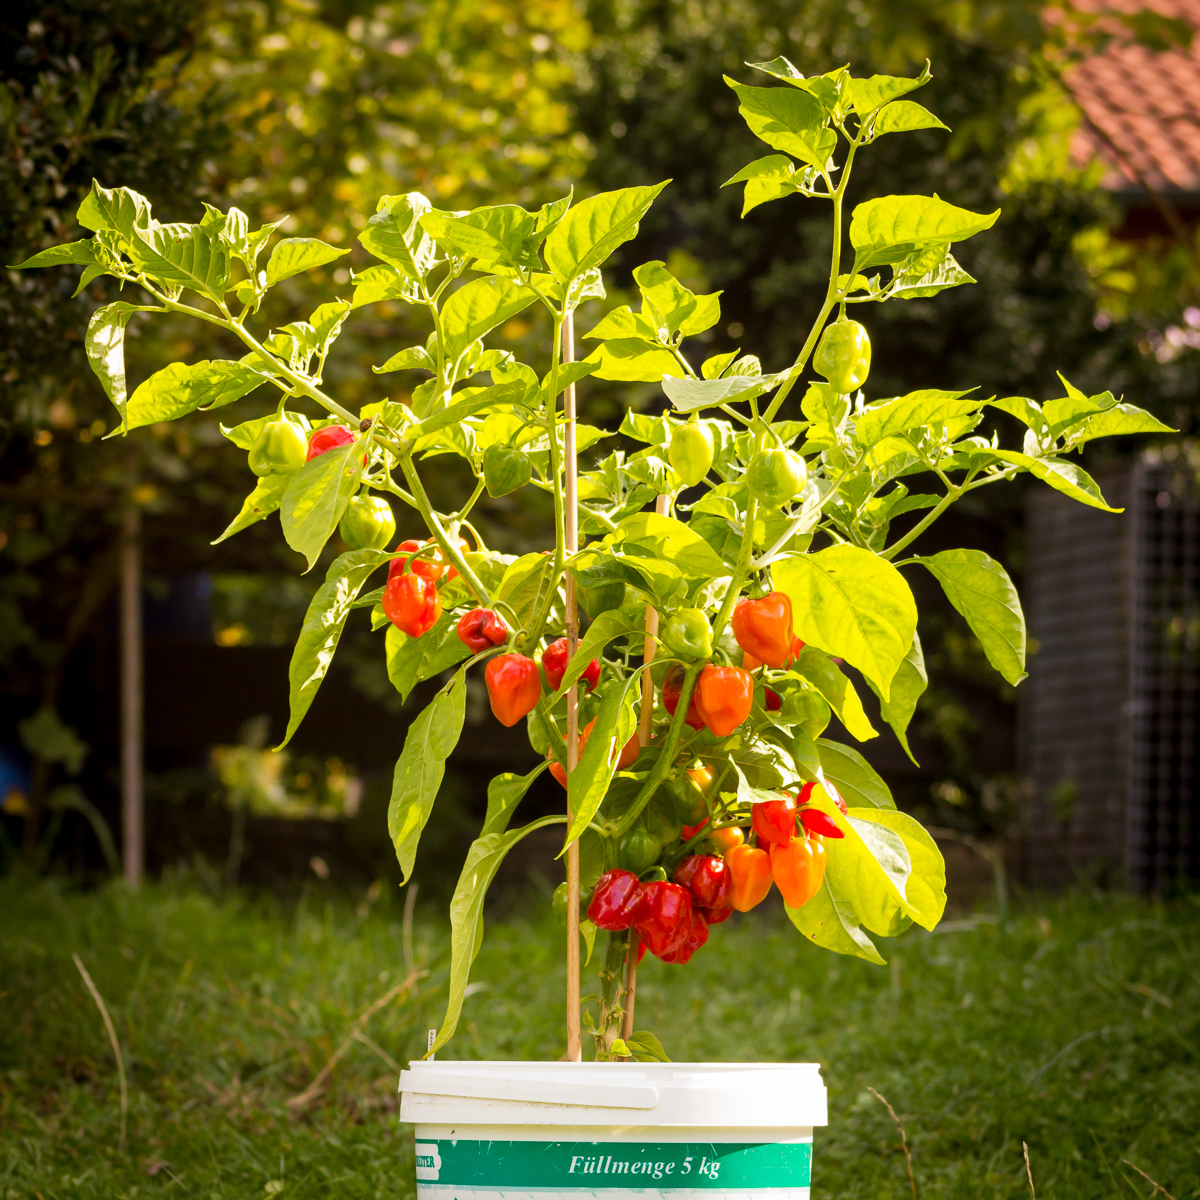 Habanero Chili Pepper Plant